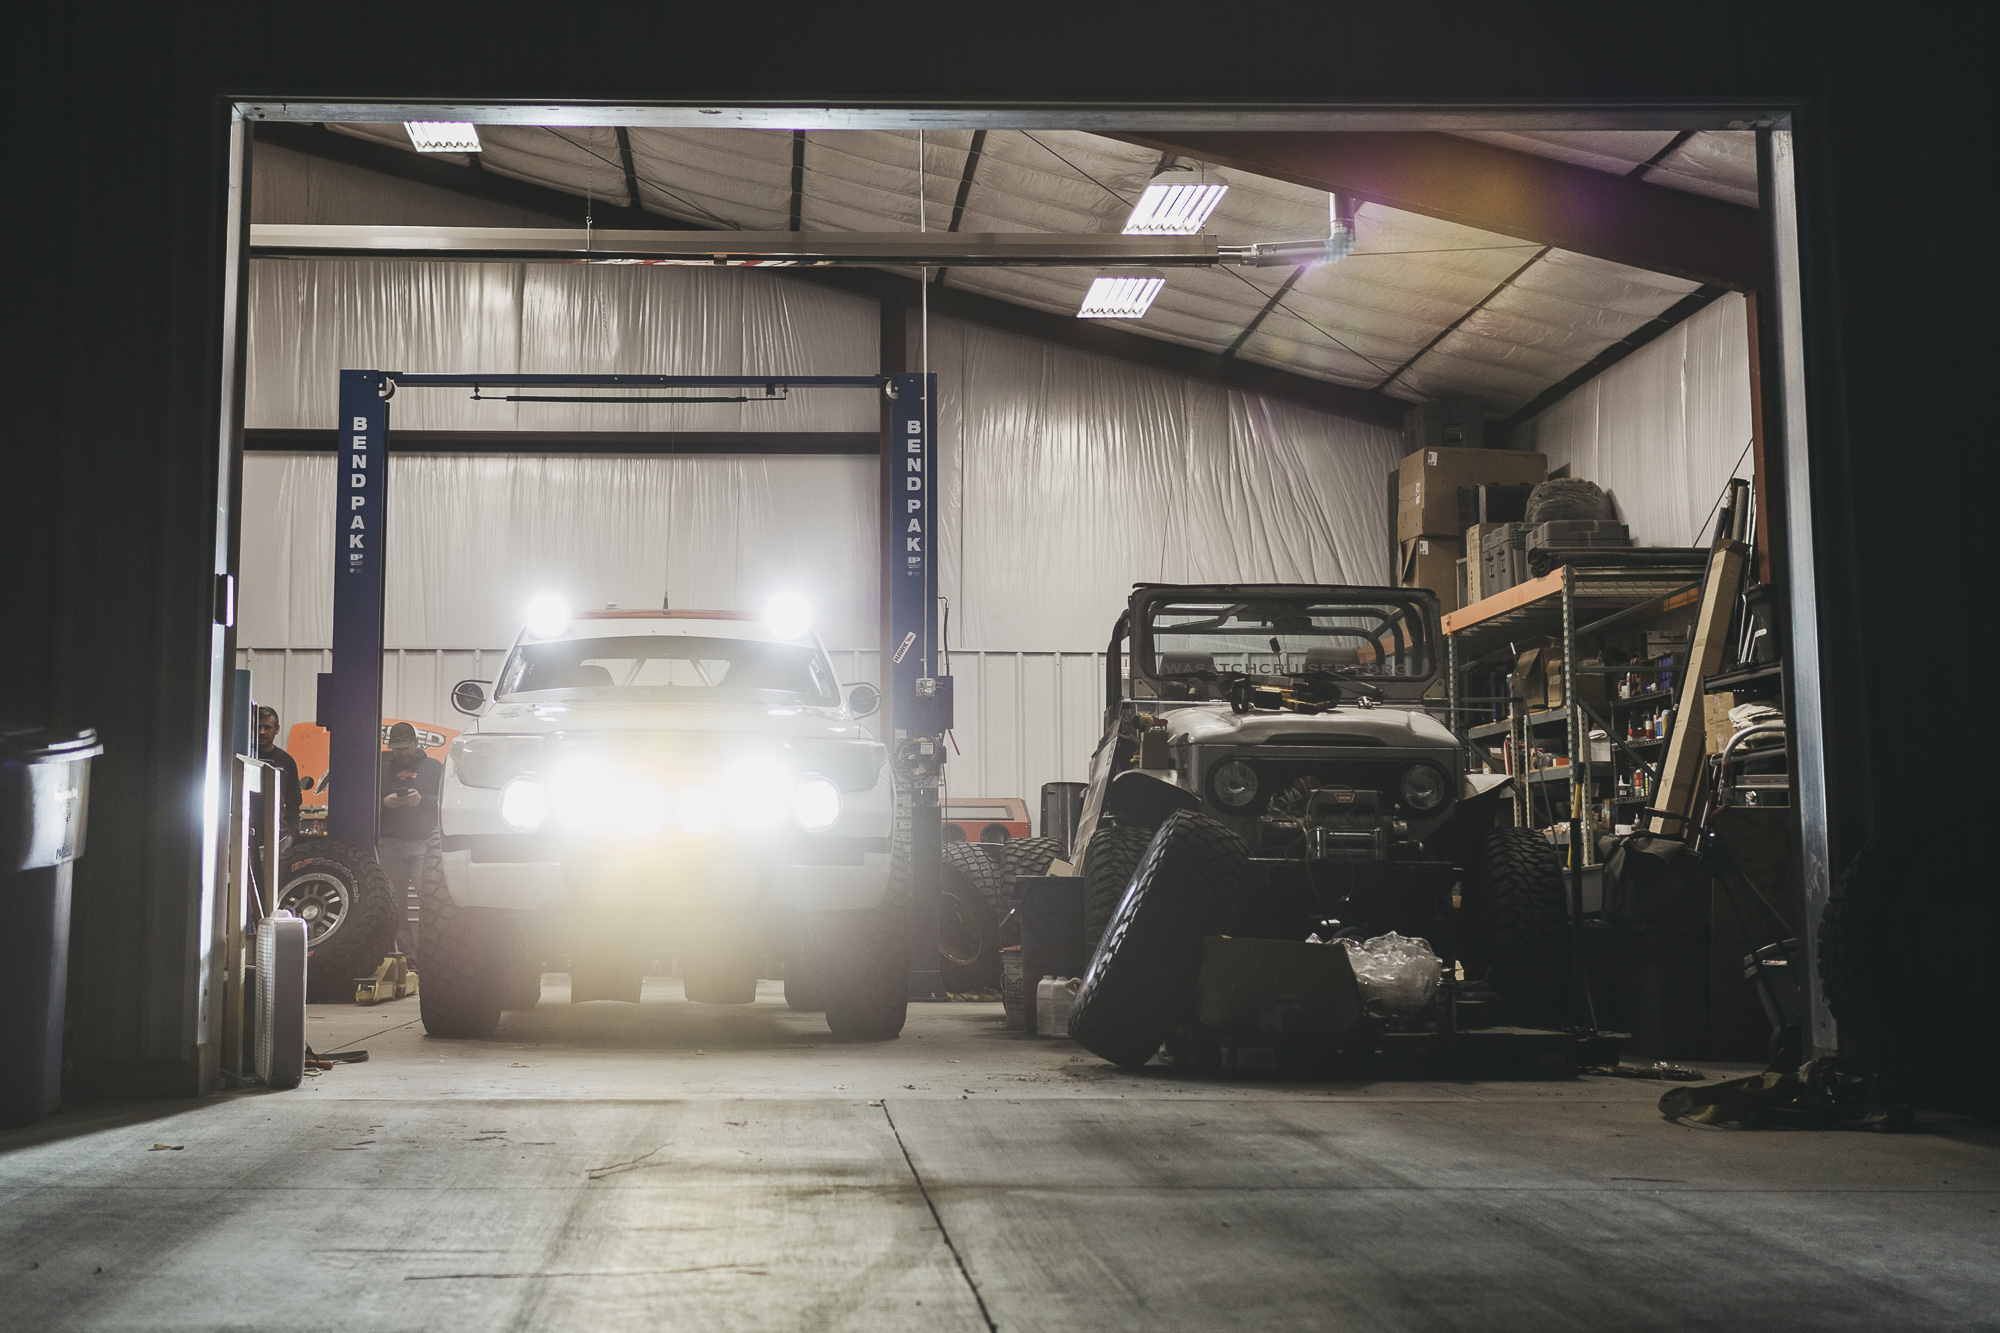 Toyota Landcruiser parked in garage with ARB Intensity Lights on